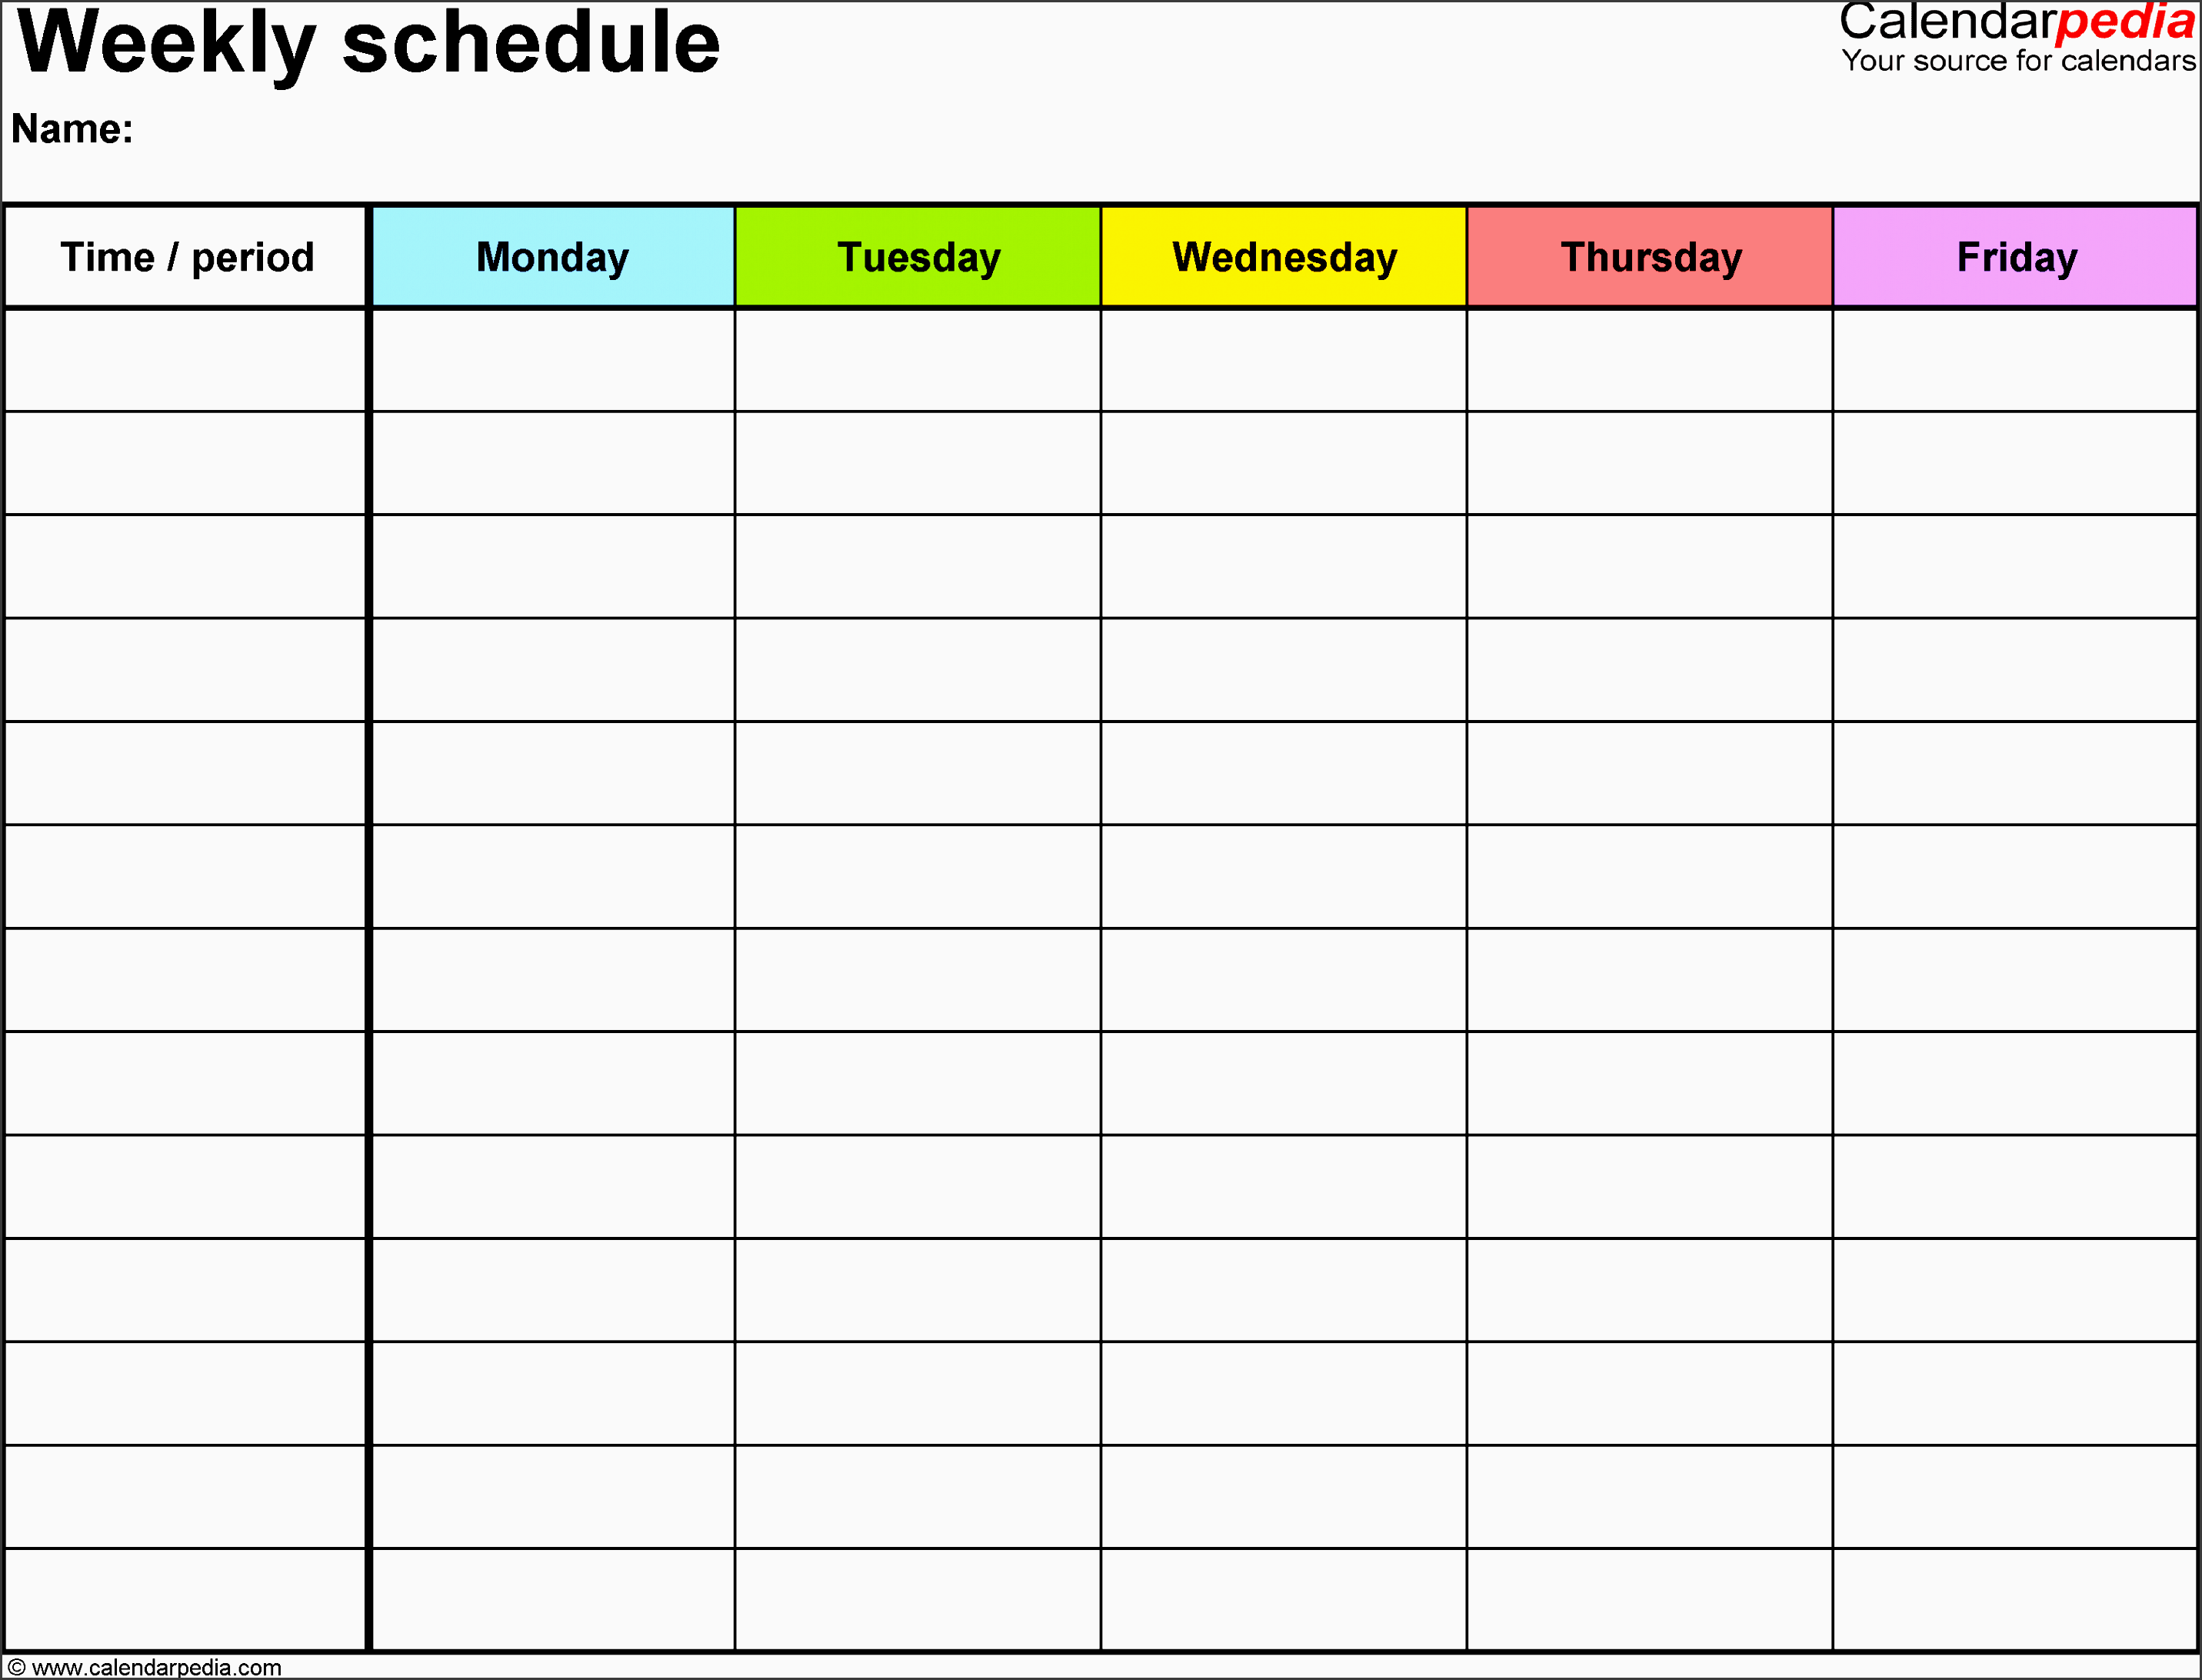 weekly schedule template for excel version 1 landscape 1 page monday to friday